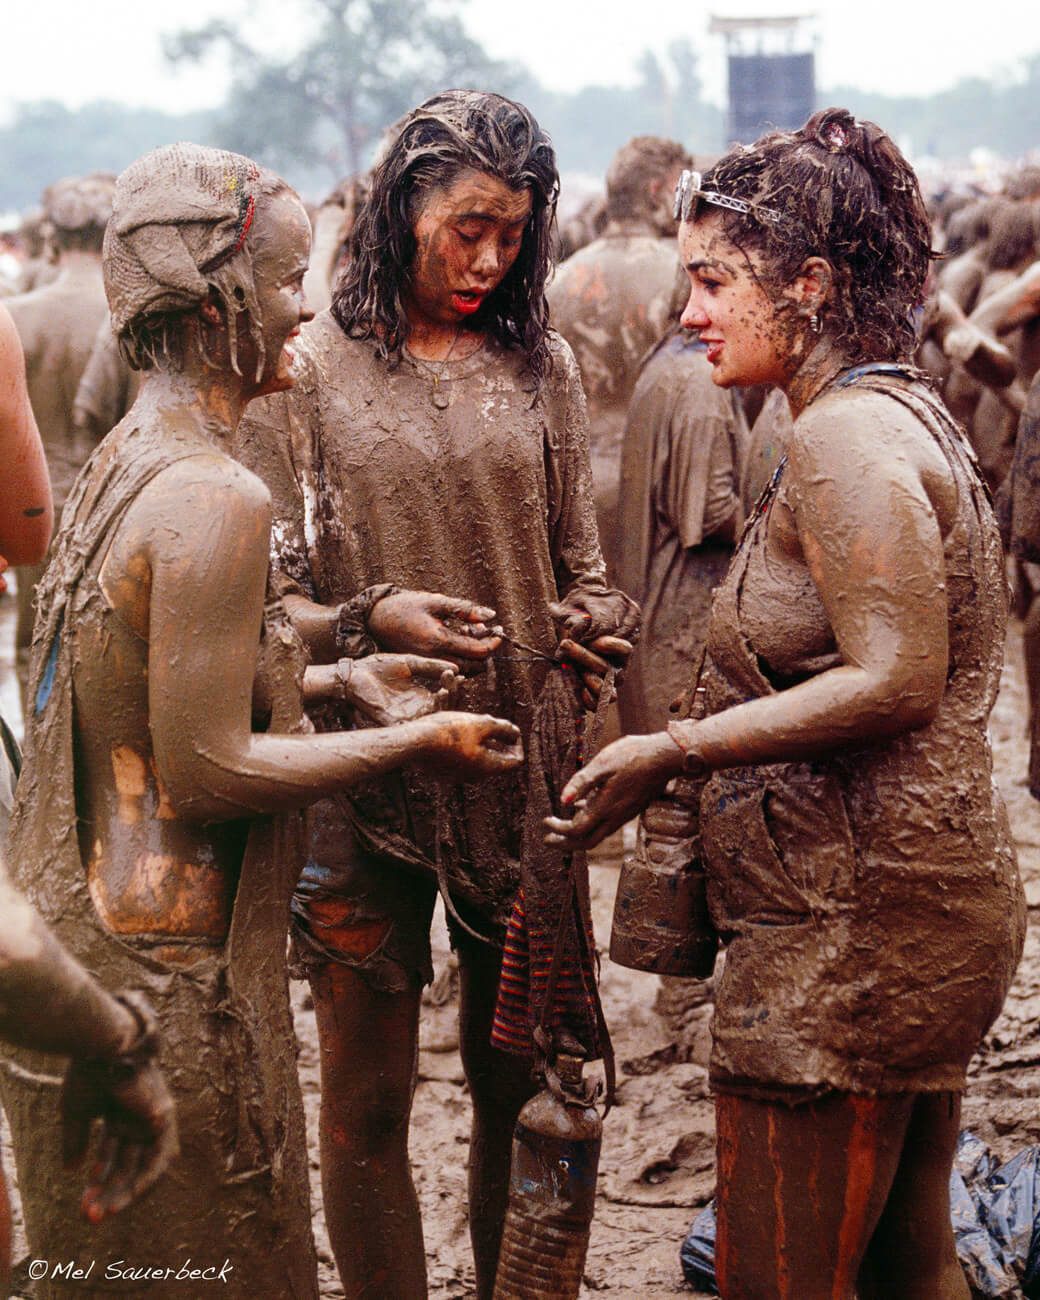 Woodstock Mud Girls